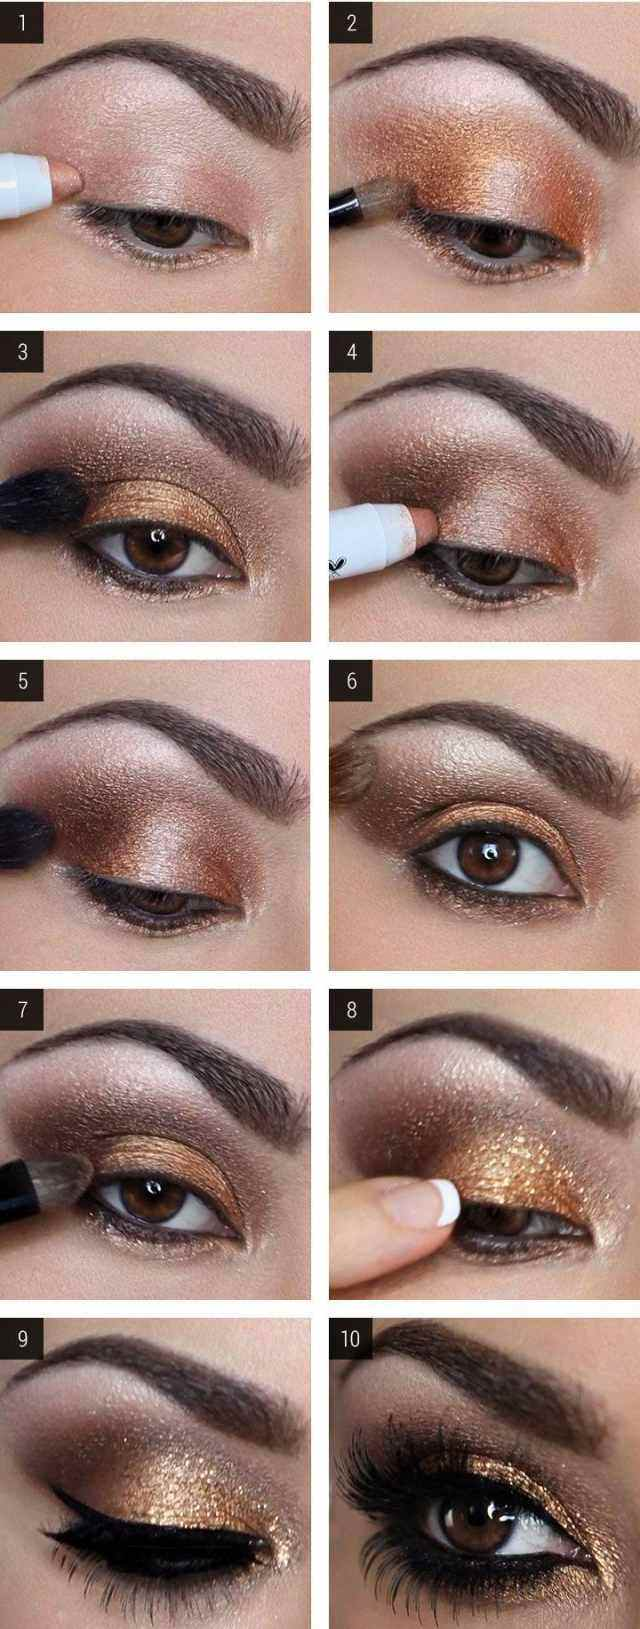 tuto-maquillage-yeux-marron-mascara-khôl-particules-or